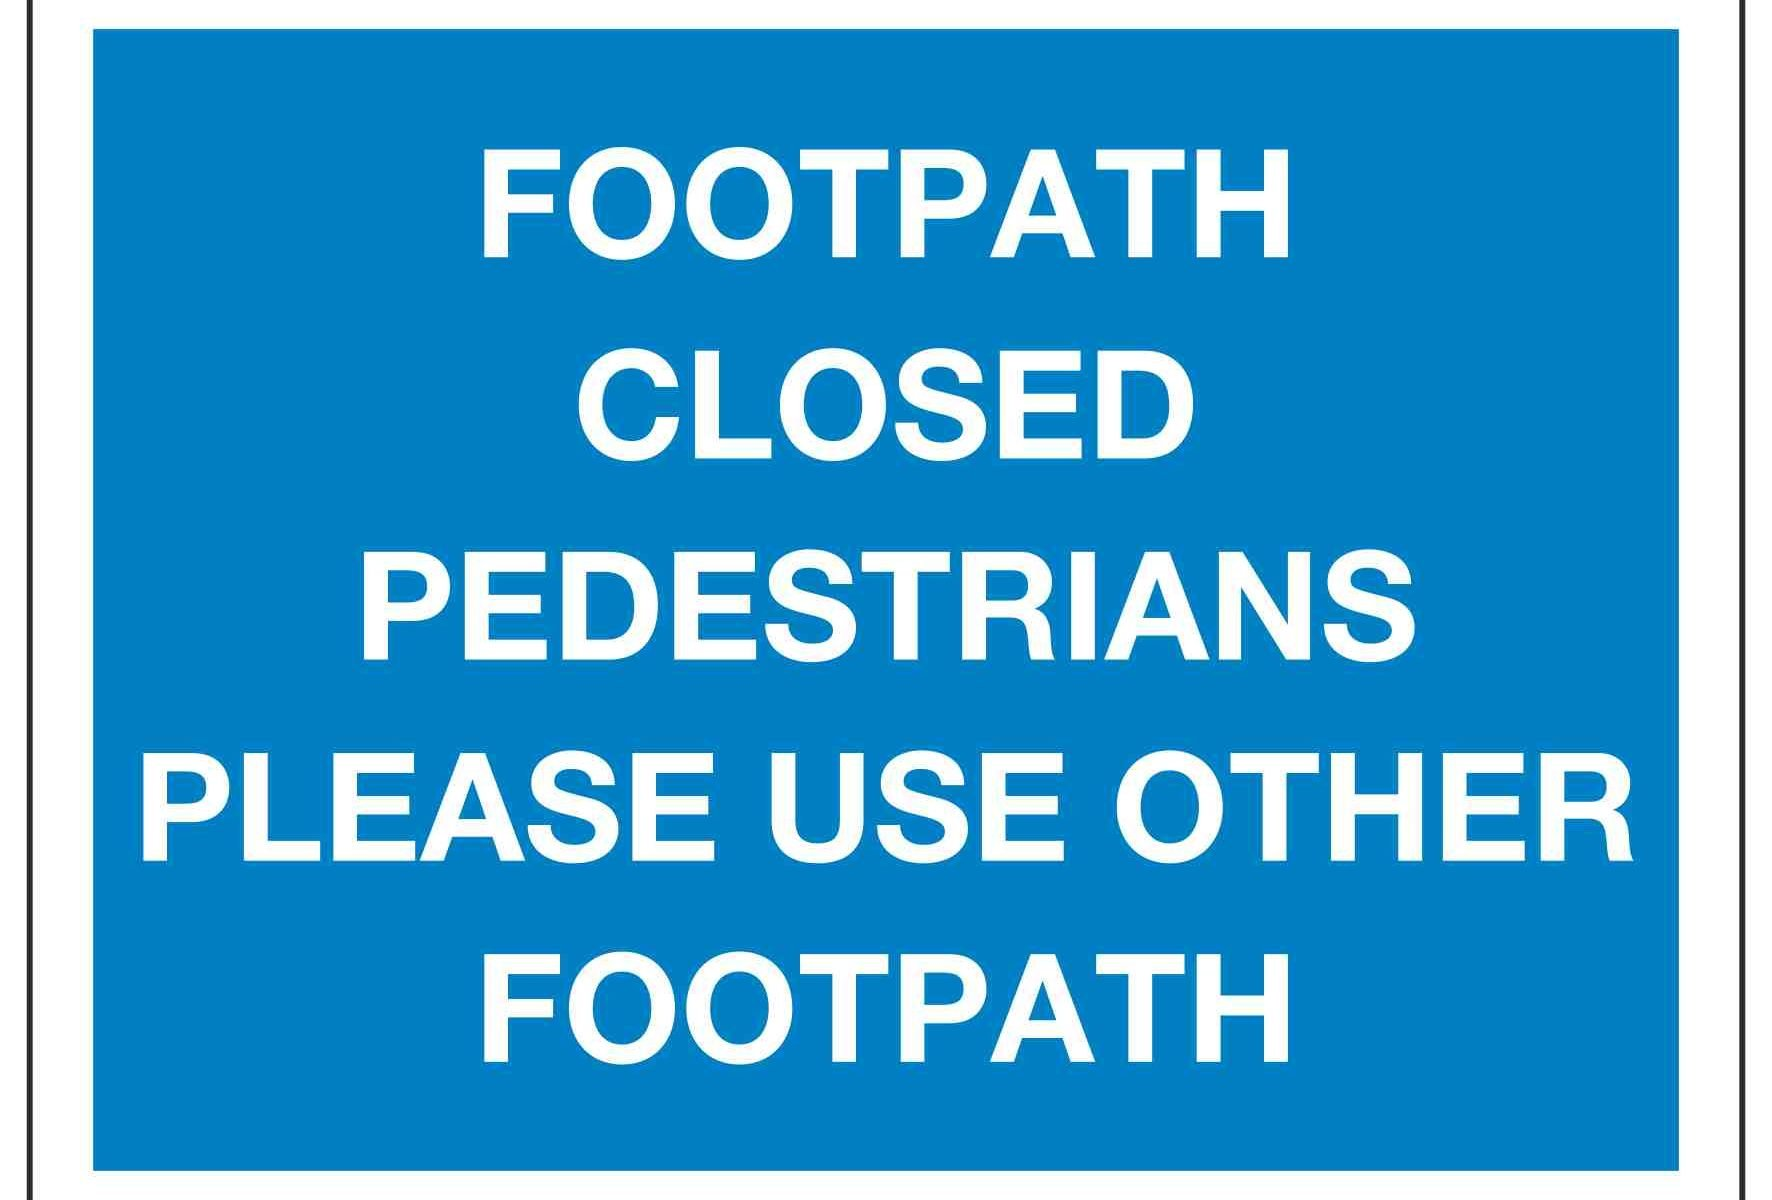 FOOTPATH CLOSED PEDESTRIANS PLEASE USE OTHER FOOTPATH